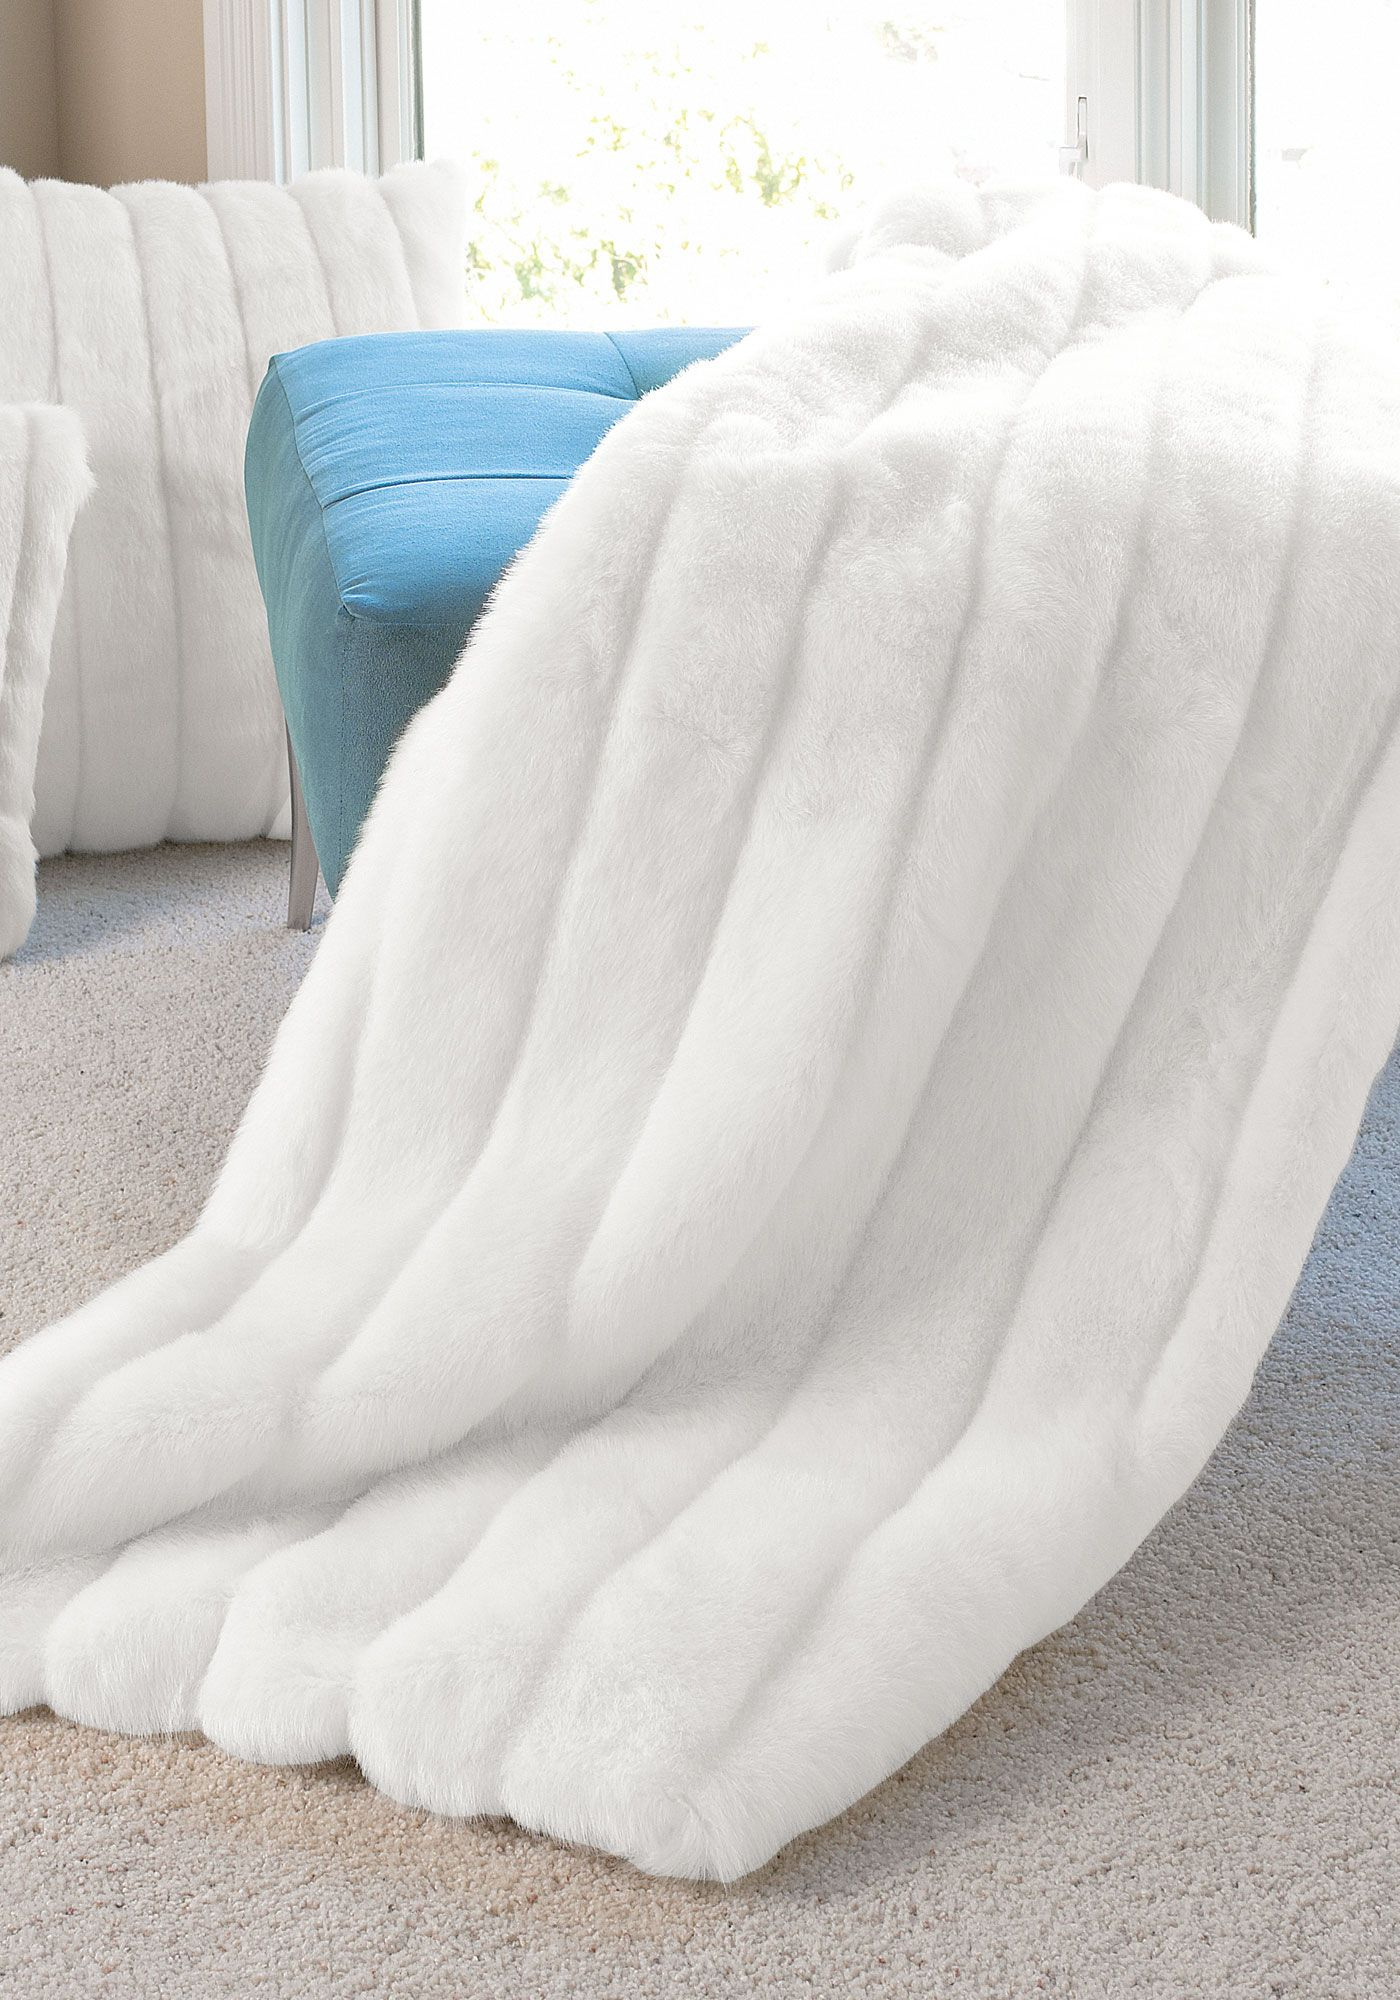 White Mink Signature Series Faux Fur Throws Fabulous Furs